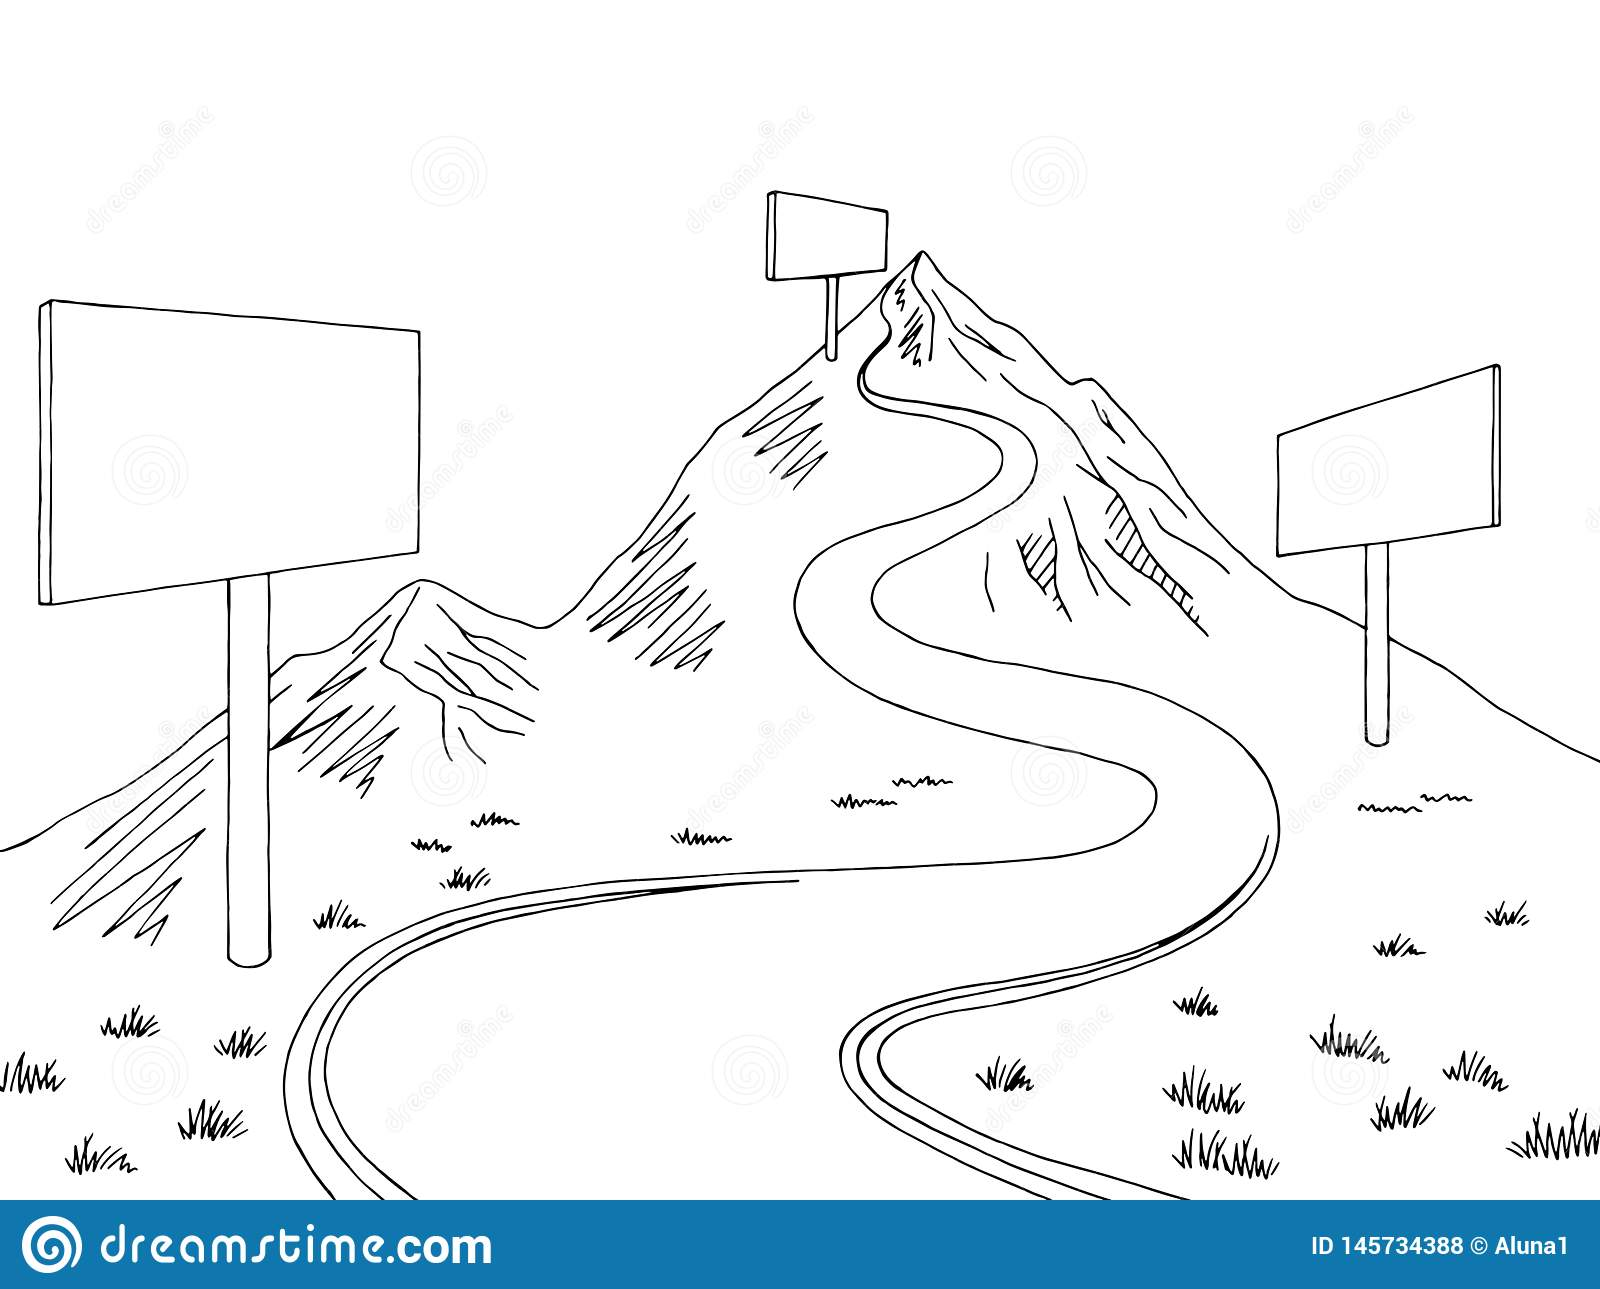 Mountain Road Billboard Graphic Black White Landscape Sketch Illustration Vector Stock Vector Illustration Of Plant Copy 145734388